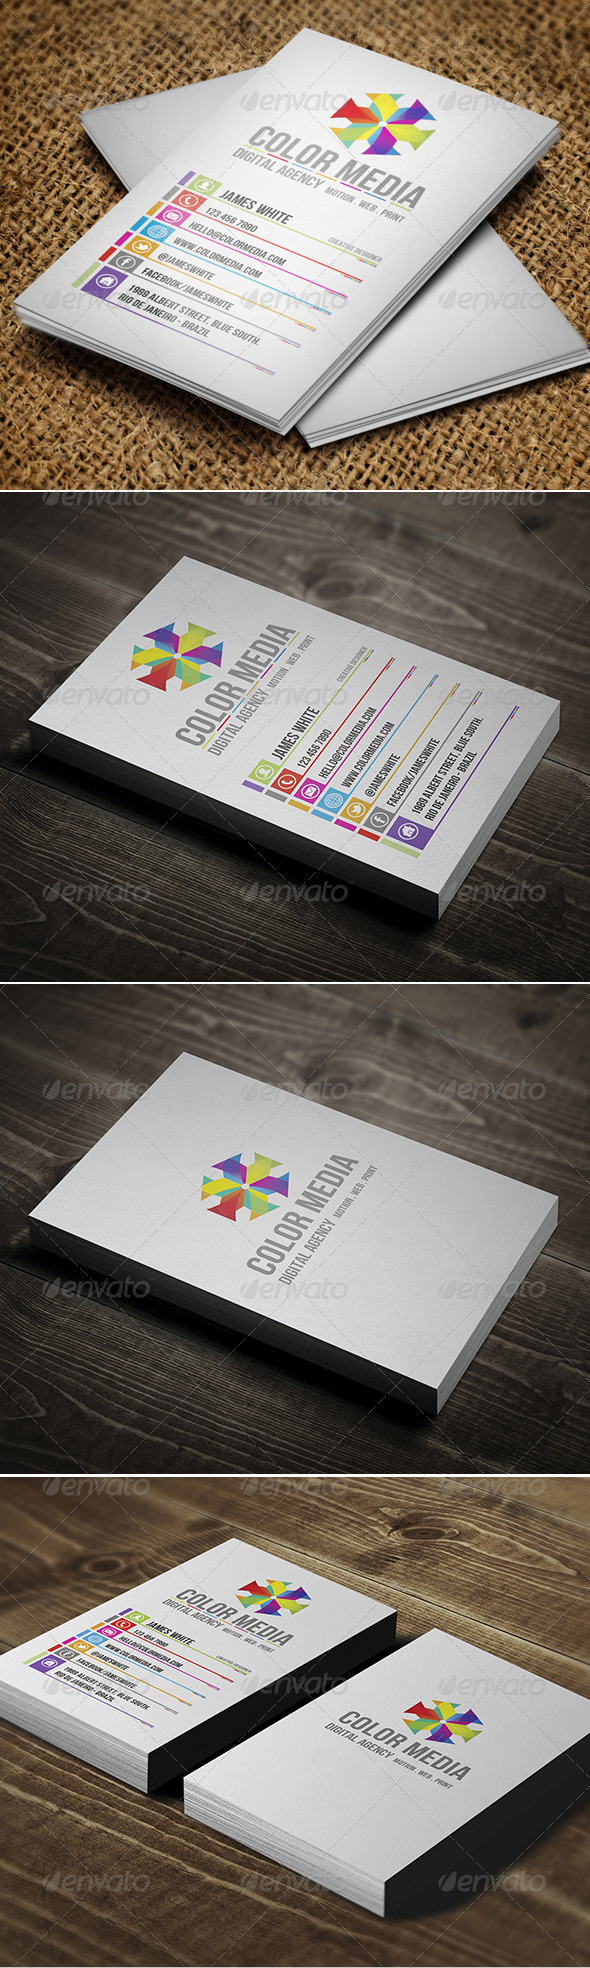 GraphicRiver Color Business Card 2760502